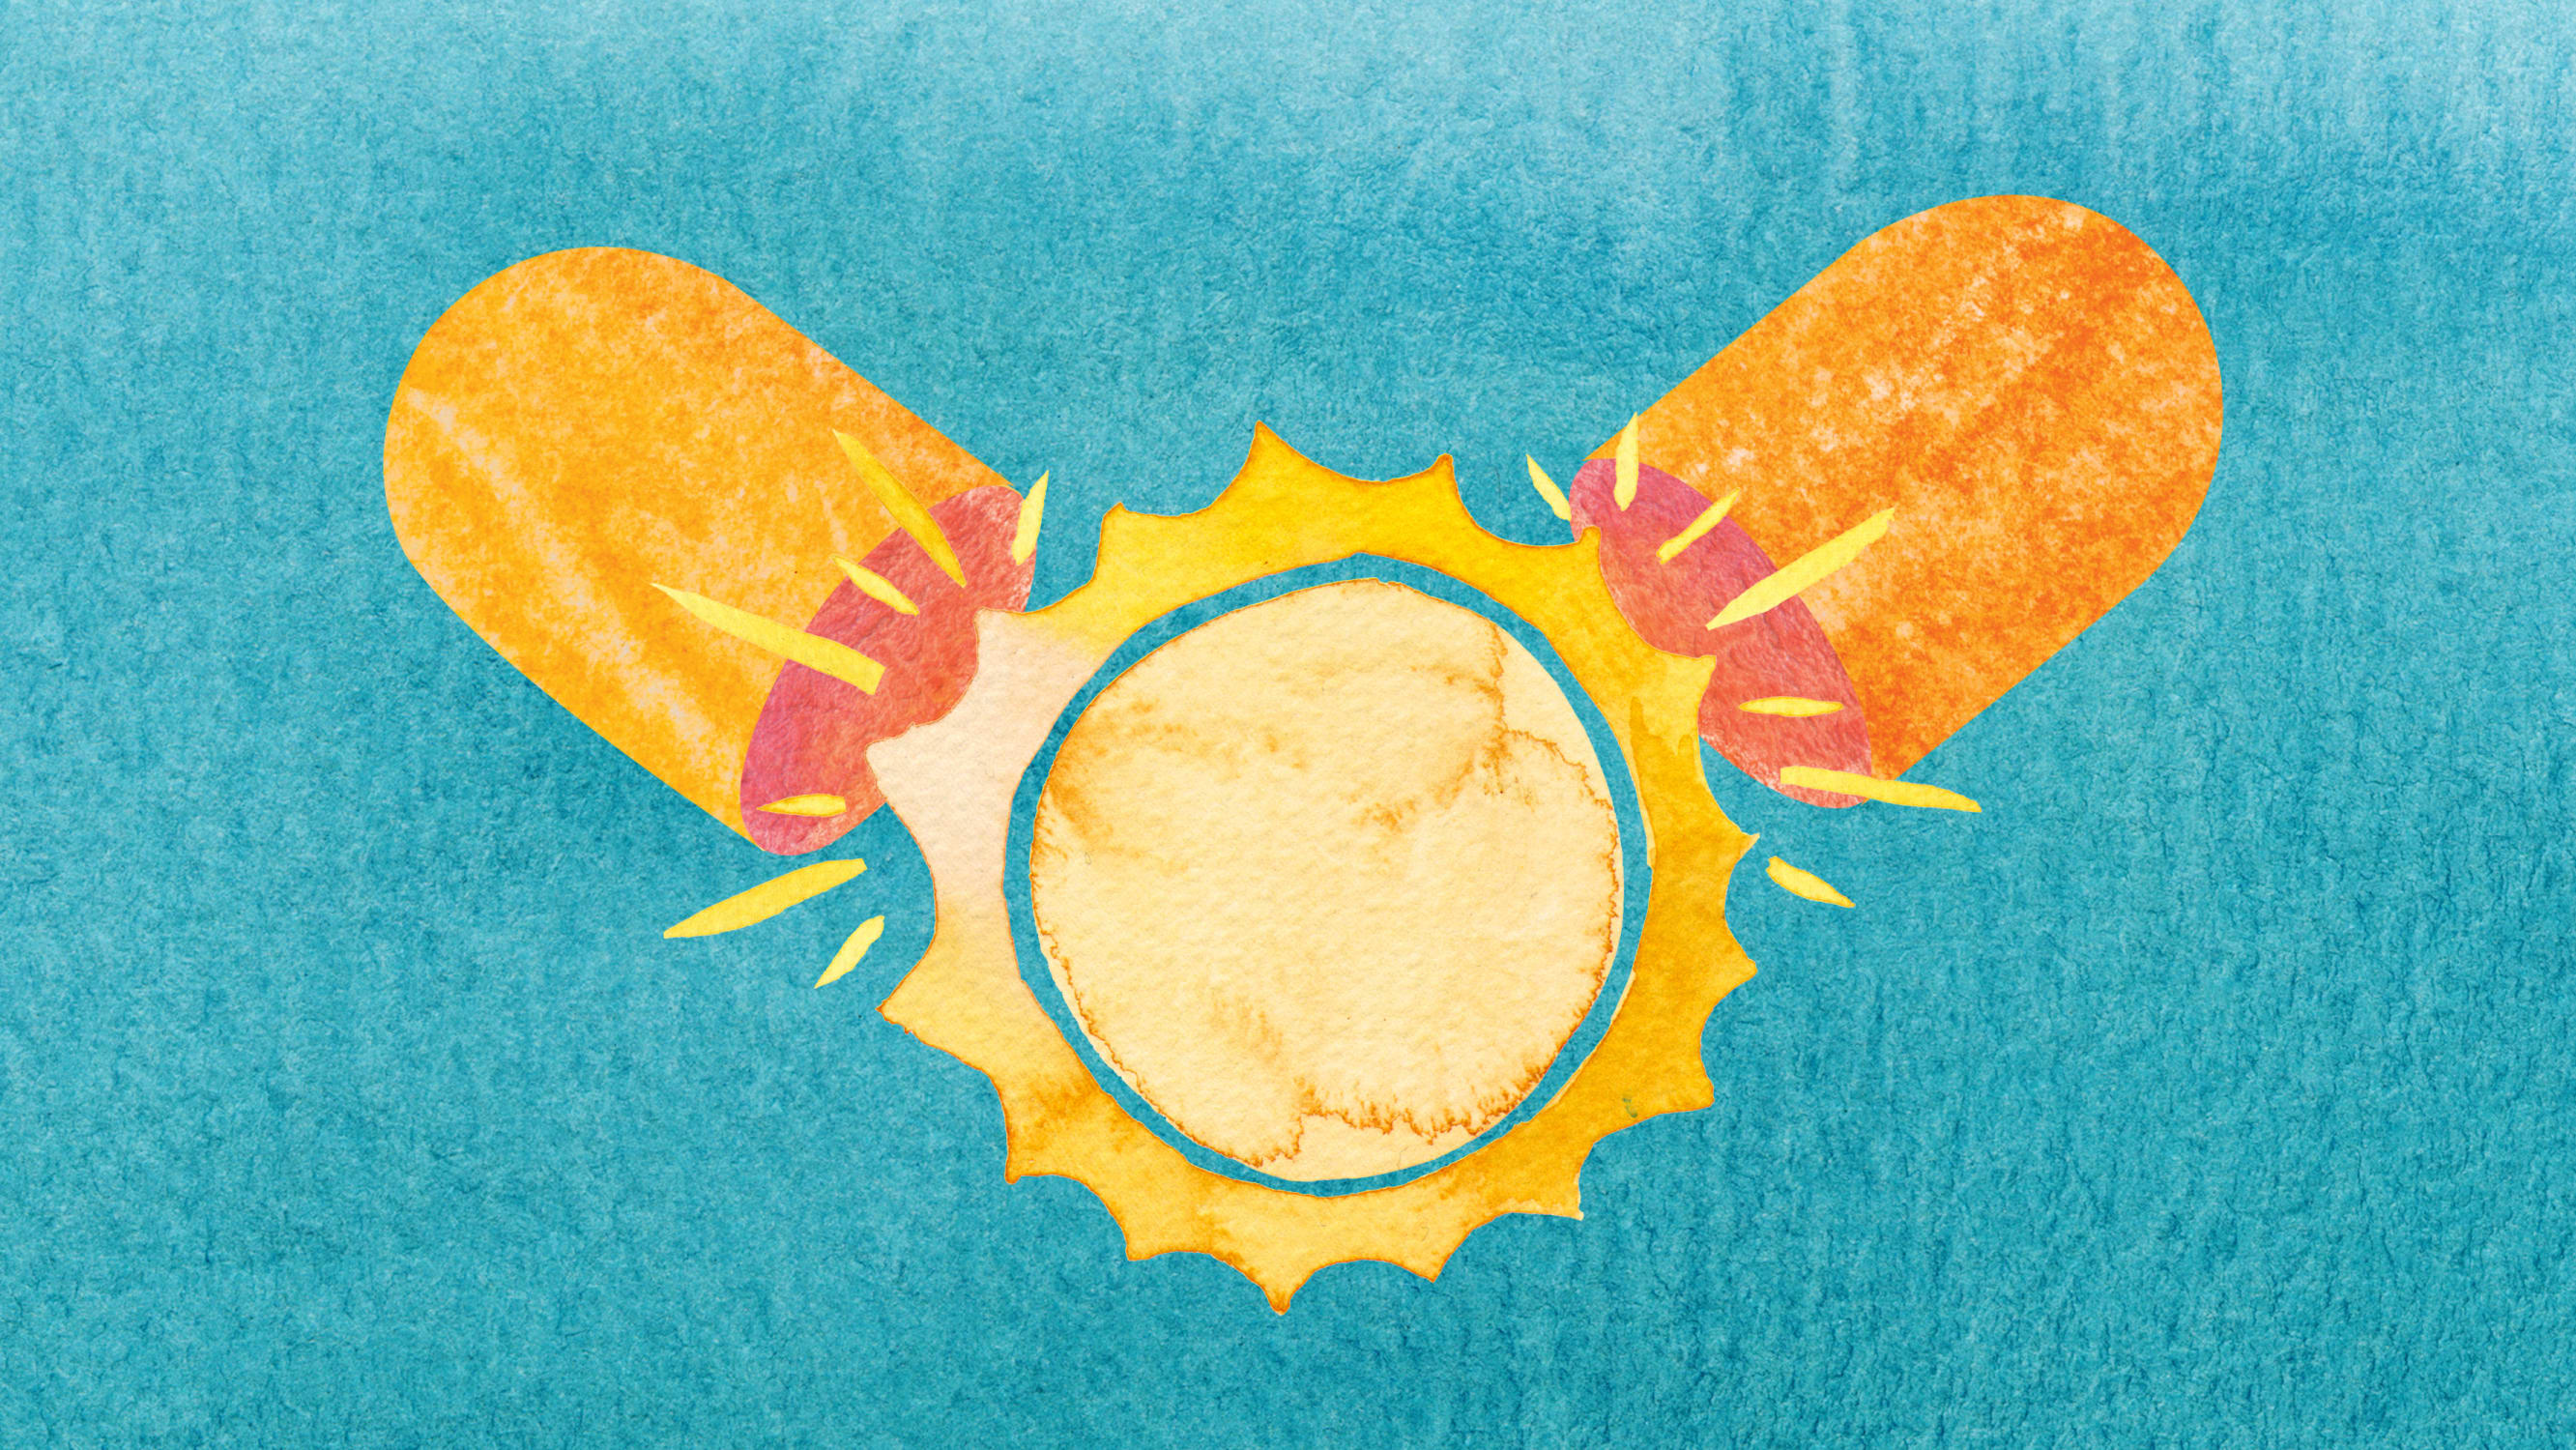 Artwork depicting sun in a capsule, representing Vitamin D